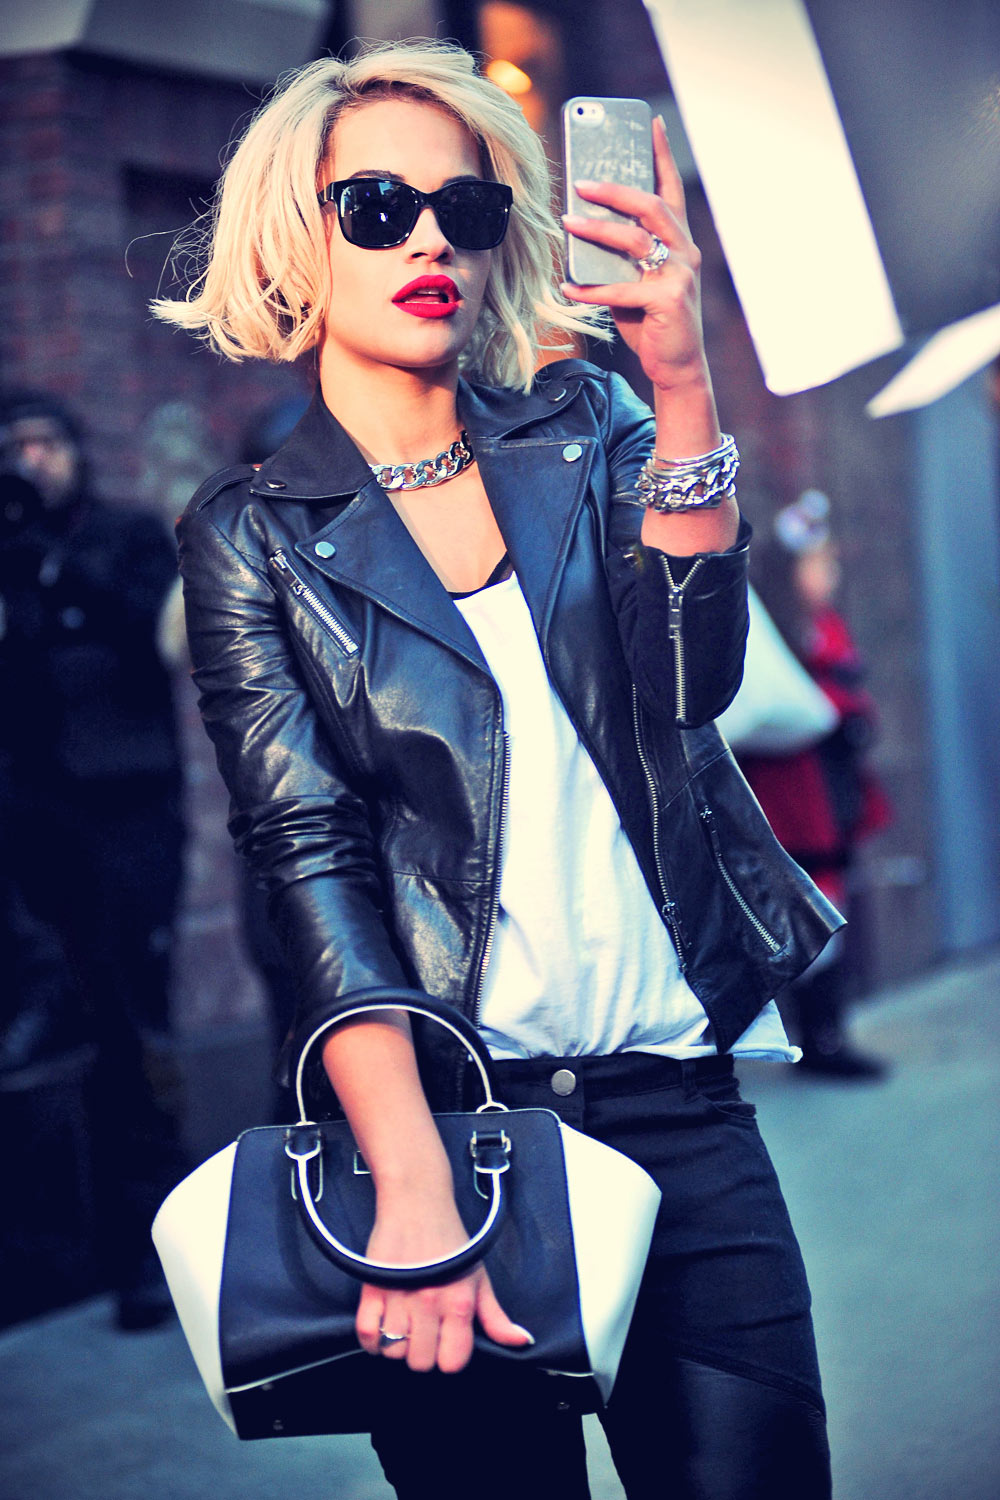 Rita Ora does a photo shoot in Times Square